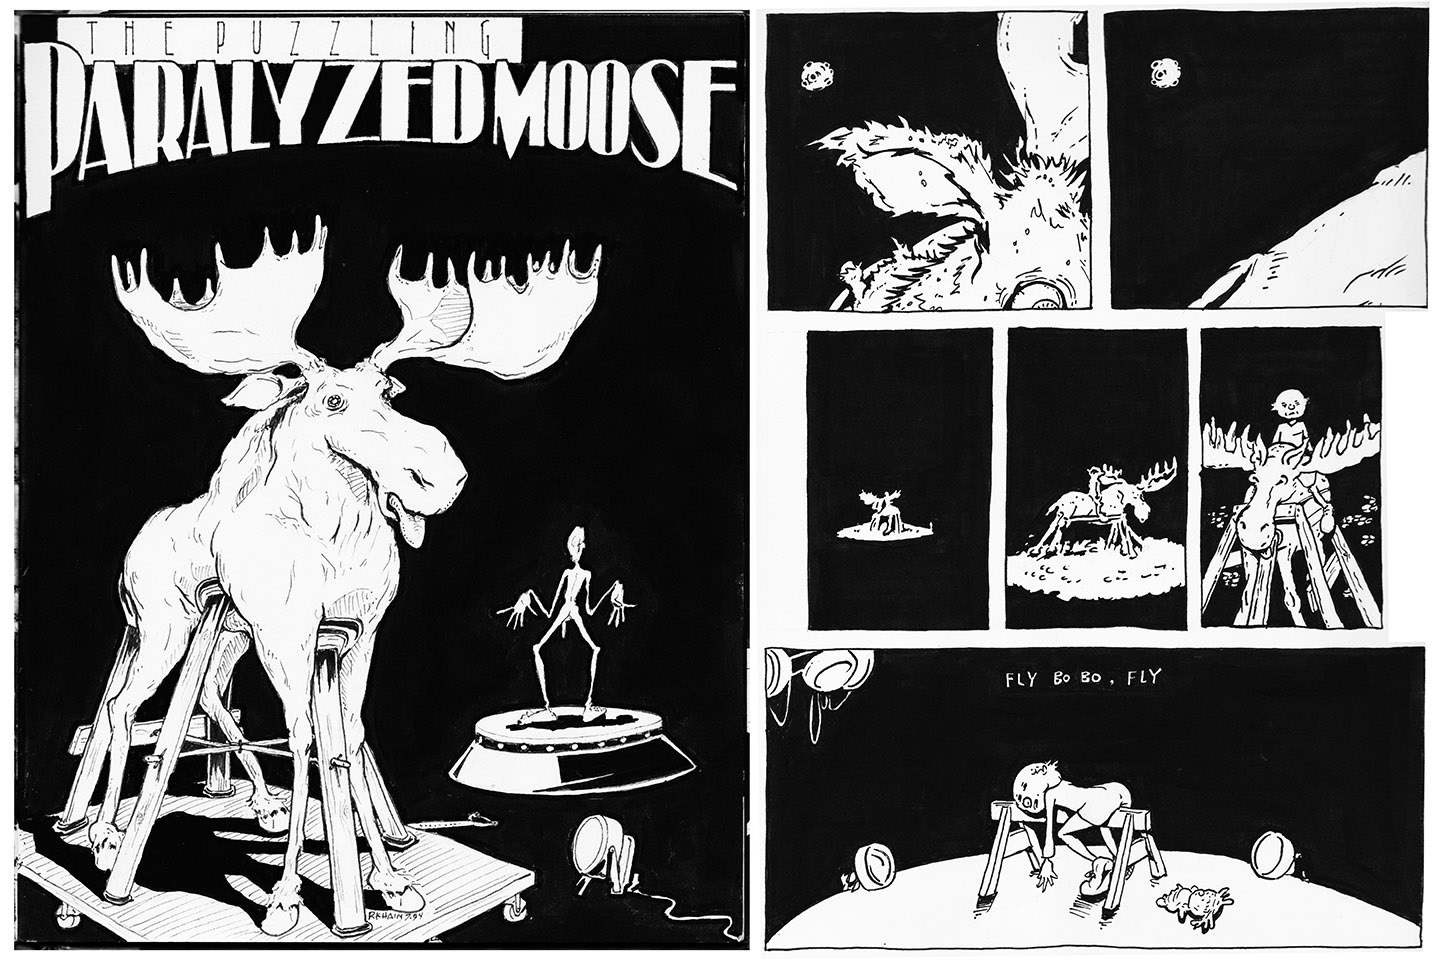 The Puzzling Paralyzed Moose